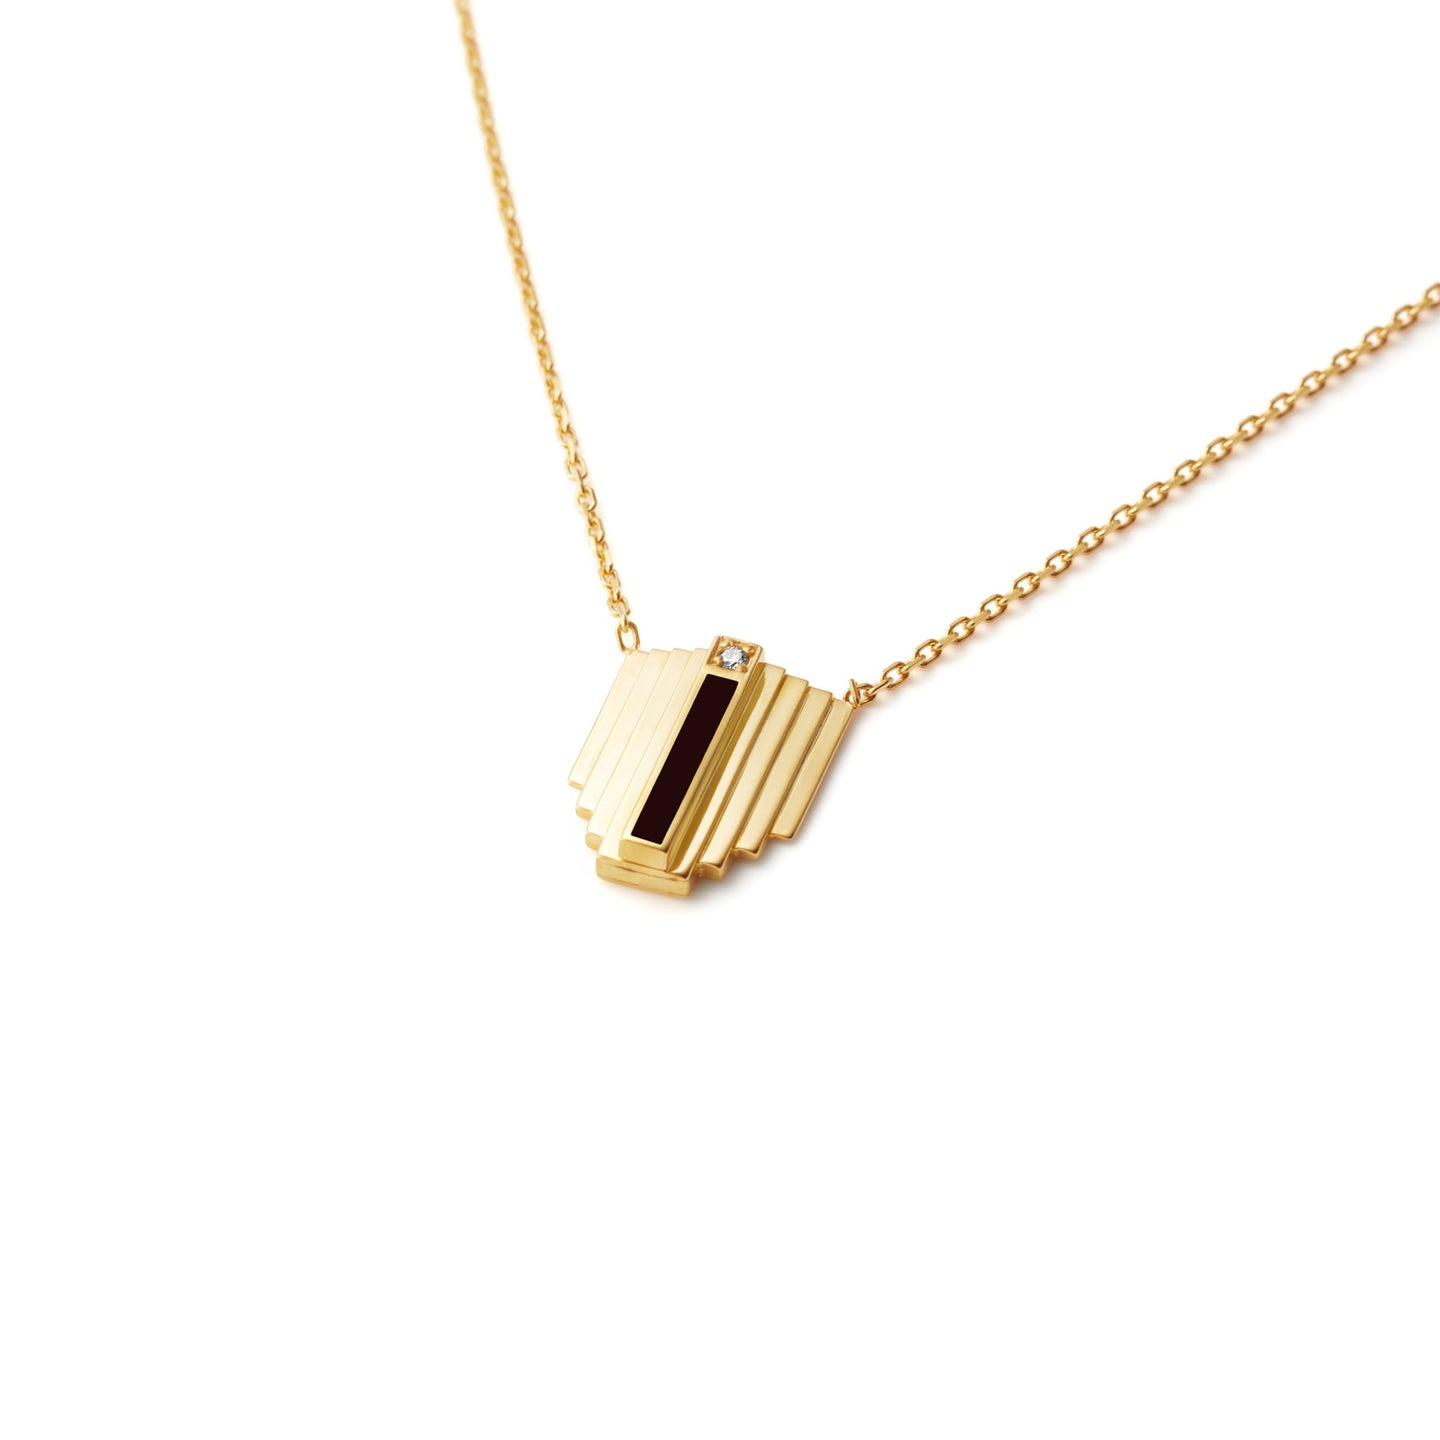 Gold Corbusier Diamond Necklace with Black Enamel